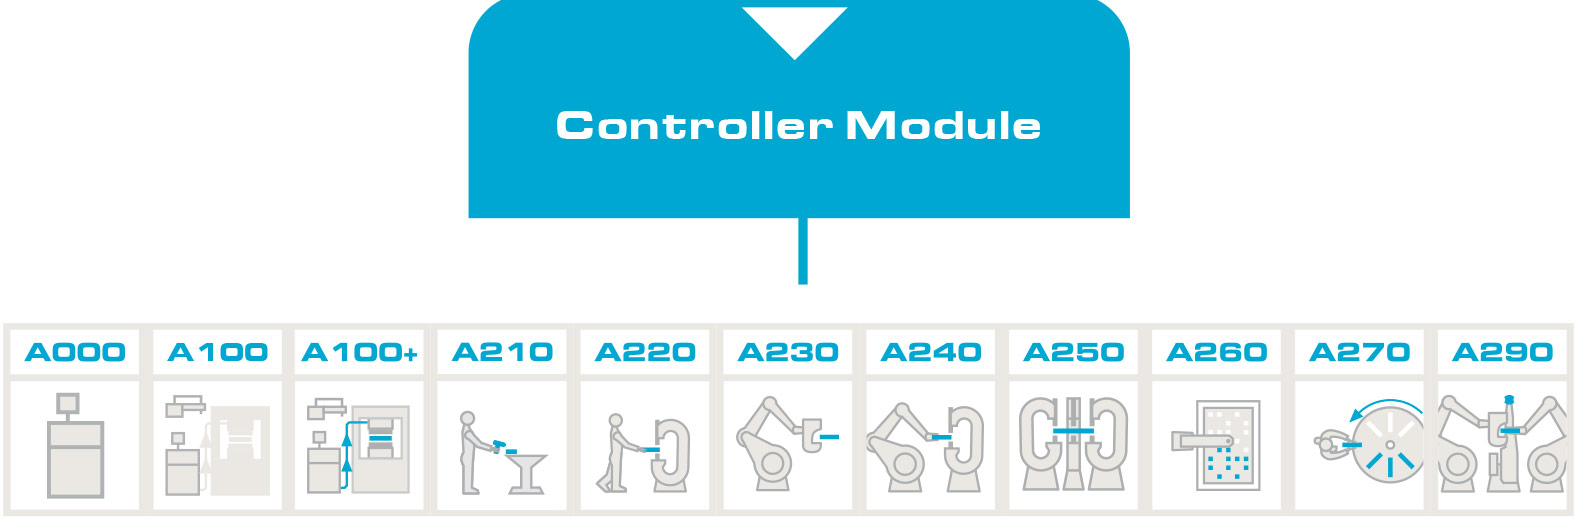 mds.all-in-one-controller modul